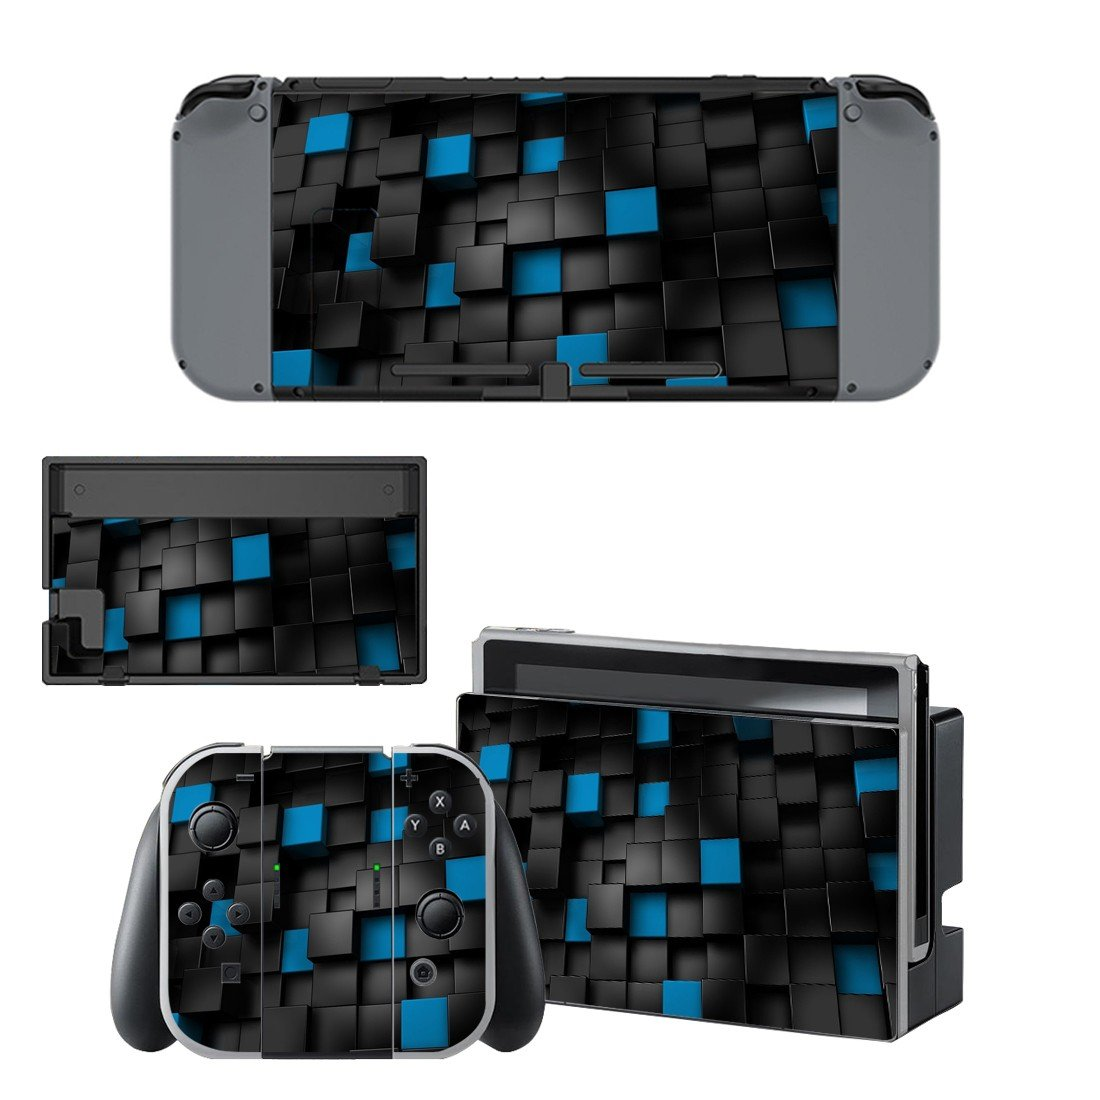 Classic Nintendo switch decal for Nintendo switch console sticker skin